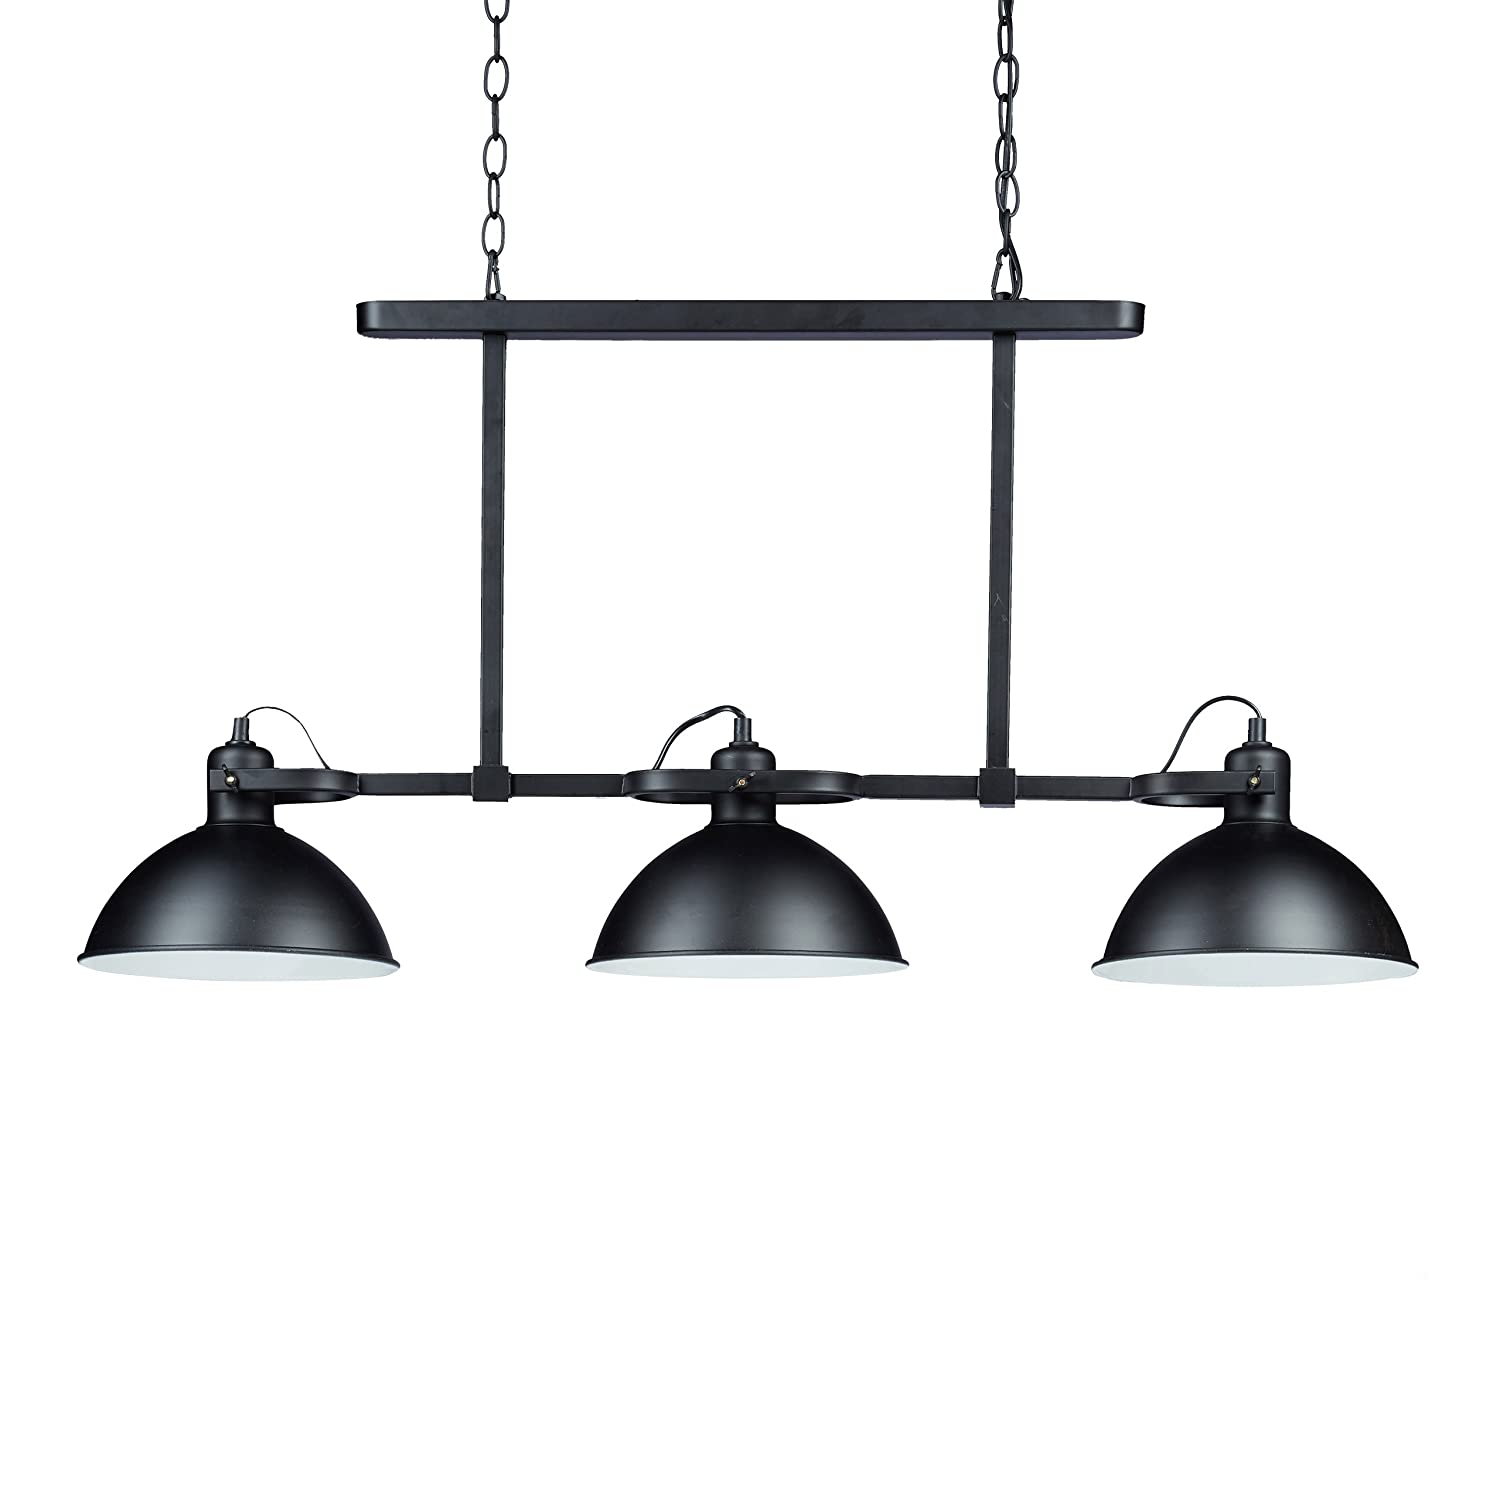 suspension 3 lampes latest led c sixties suspension design lampes with suspension 3 lampes. Black Bedroom Furniture Sets. Home Design Ideas